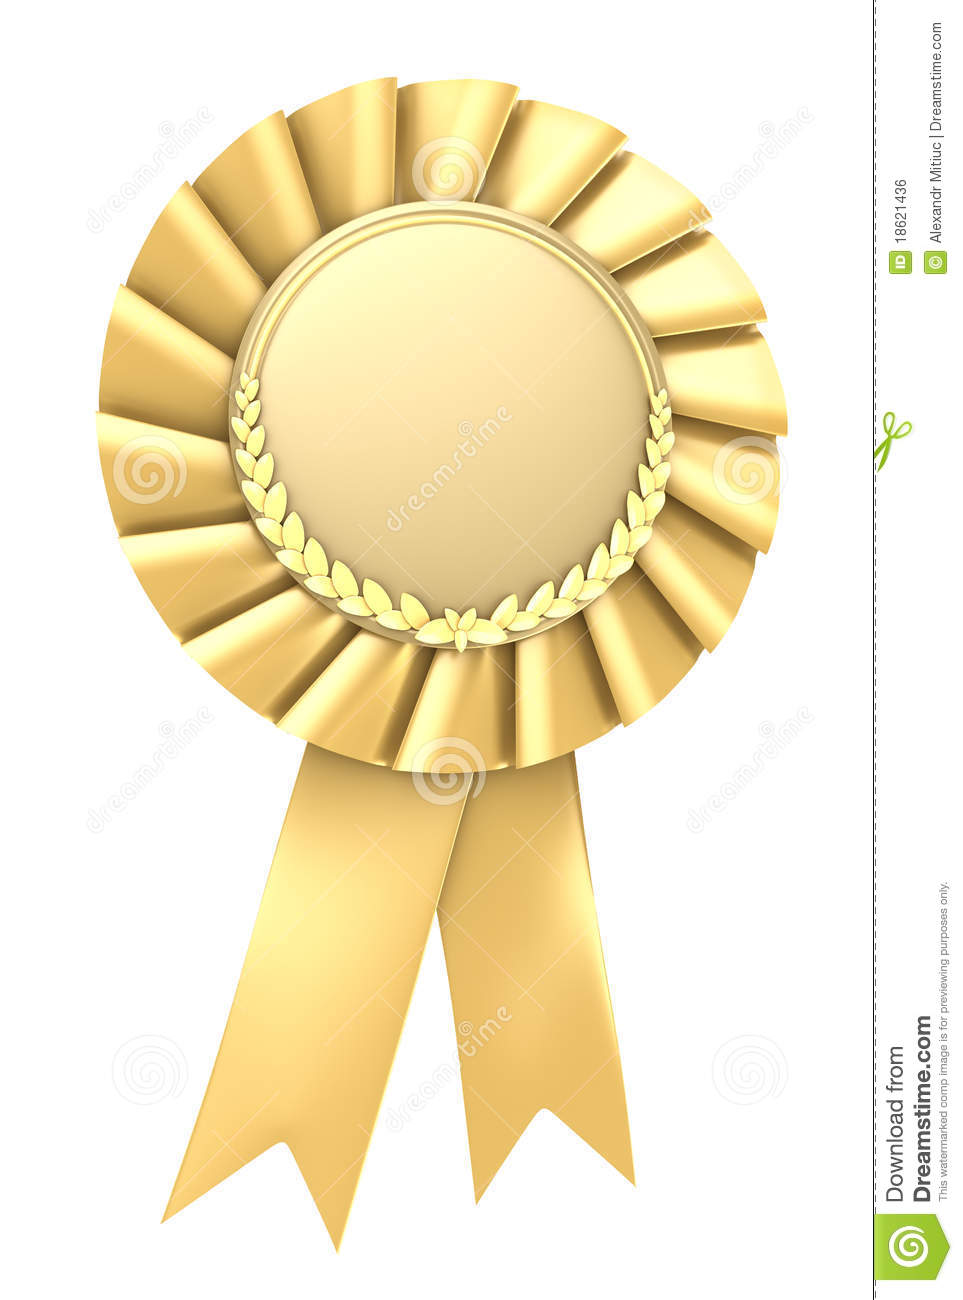 Gold Ribbon Award Blank With Copy Space Royalty Free Stock ...